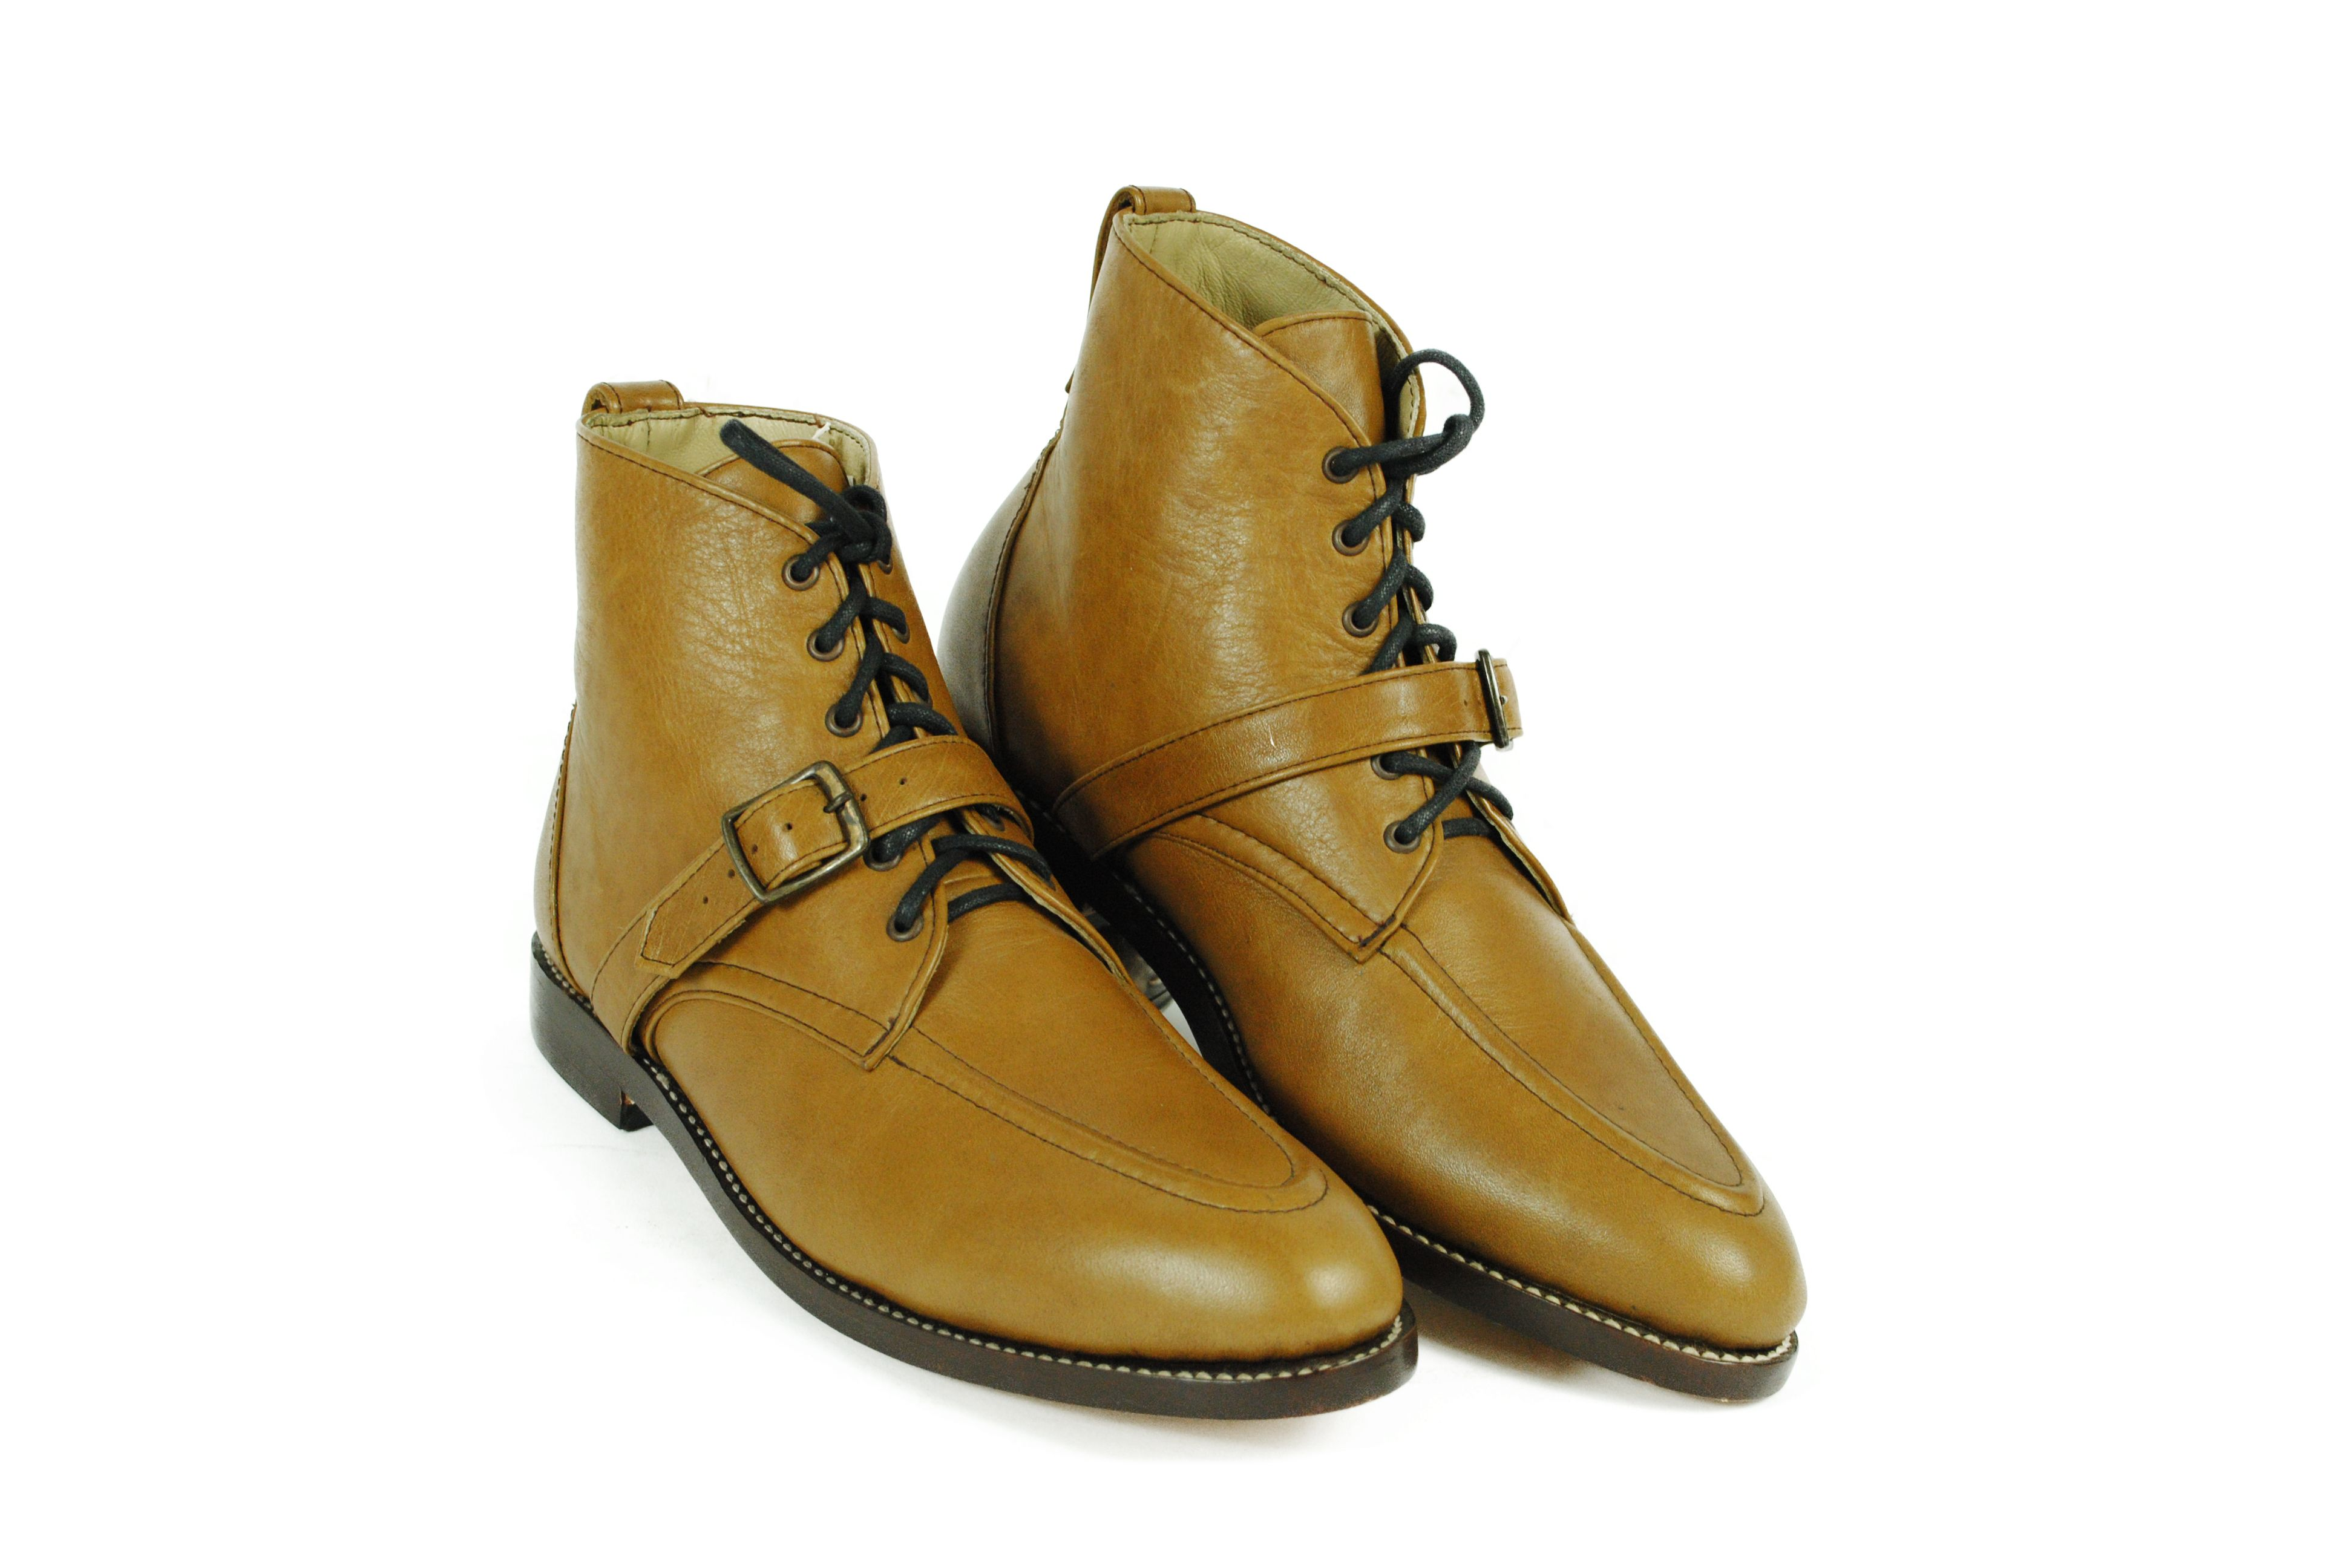 77526a1aca192 Rimbaud Moc Toe Ankle Goodyear Welted Boots.